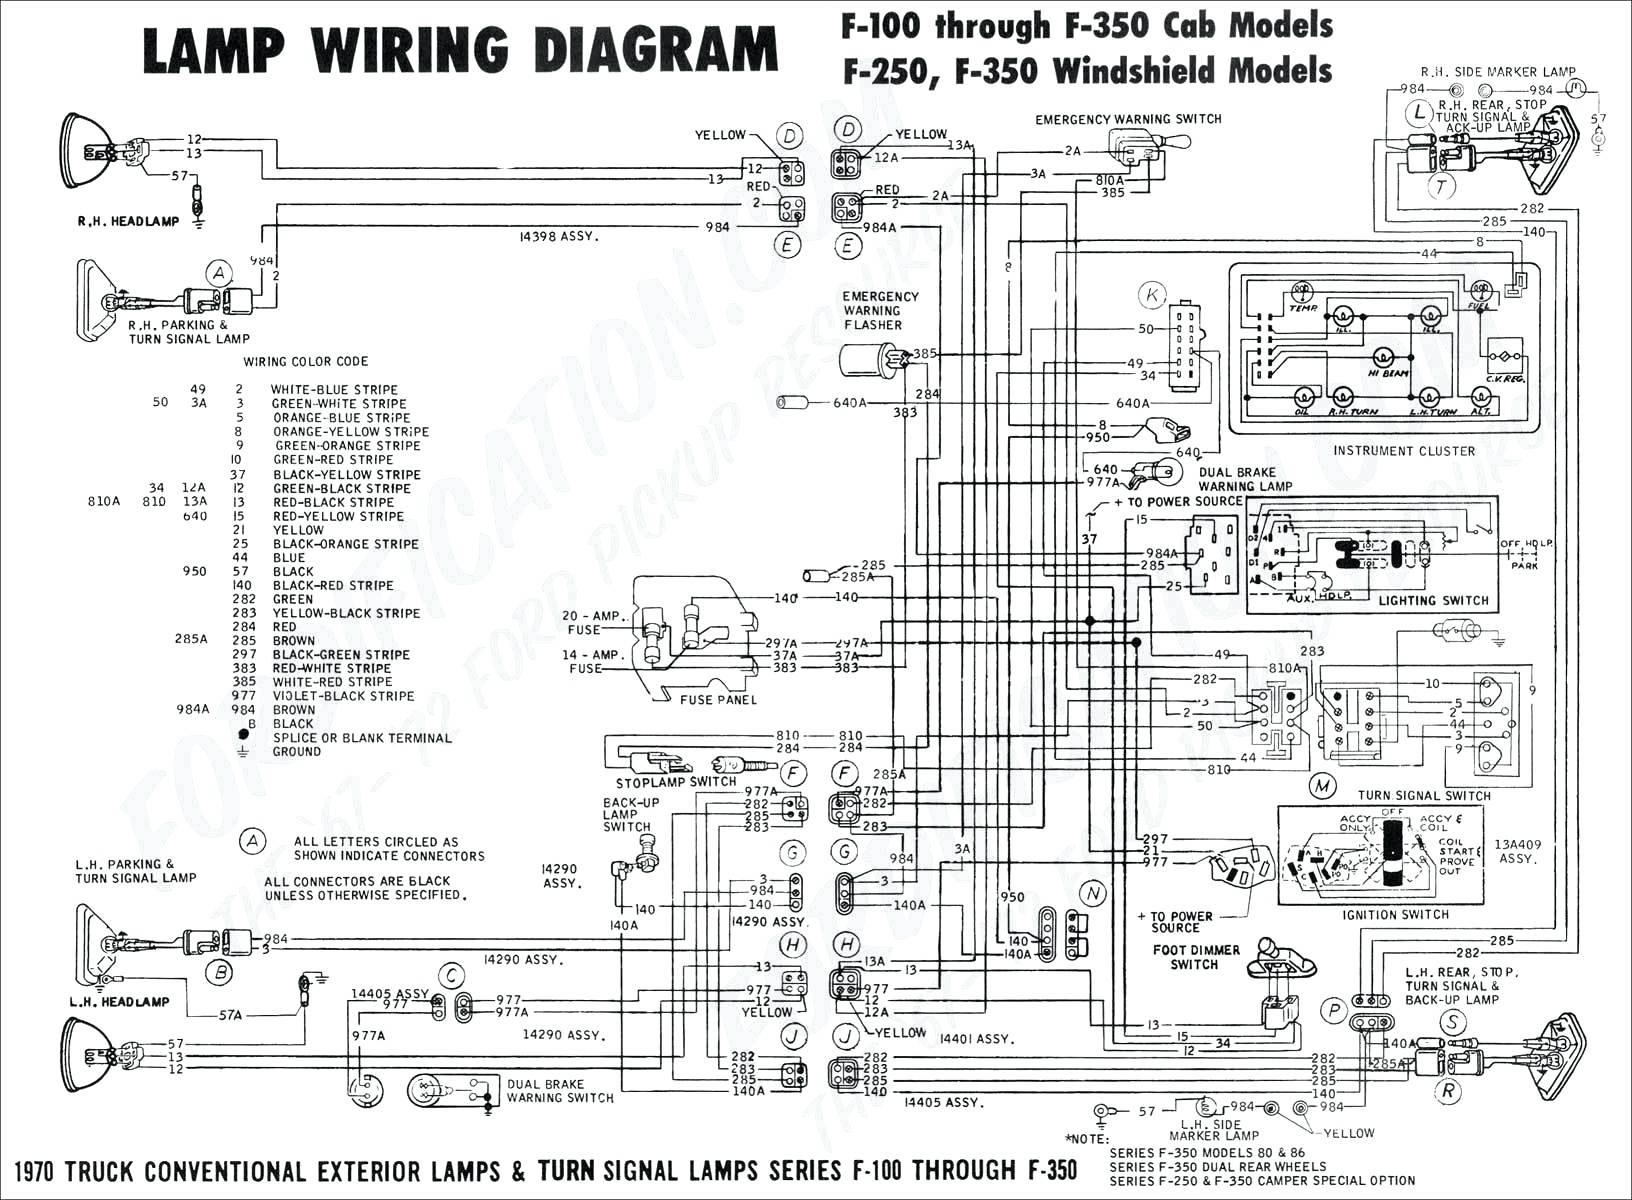 2002 ford Explorer Xlt Engine Diagram 2002 ford F 350 Wiring Diagram Wiring Data Of 2002 ford Explorer Xlt Engine Diagram